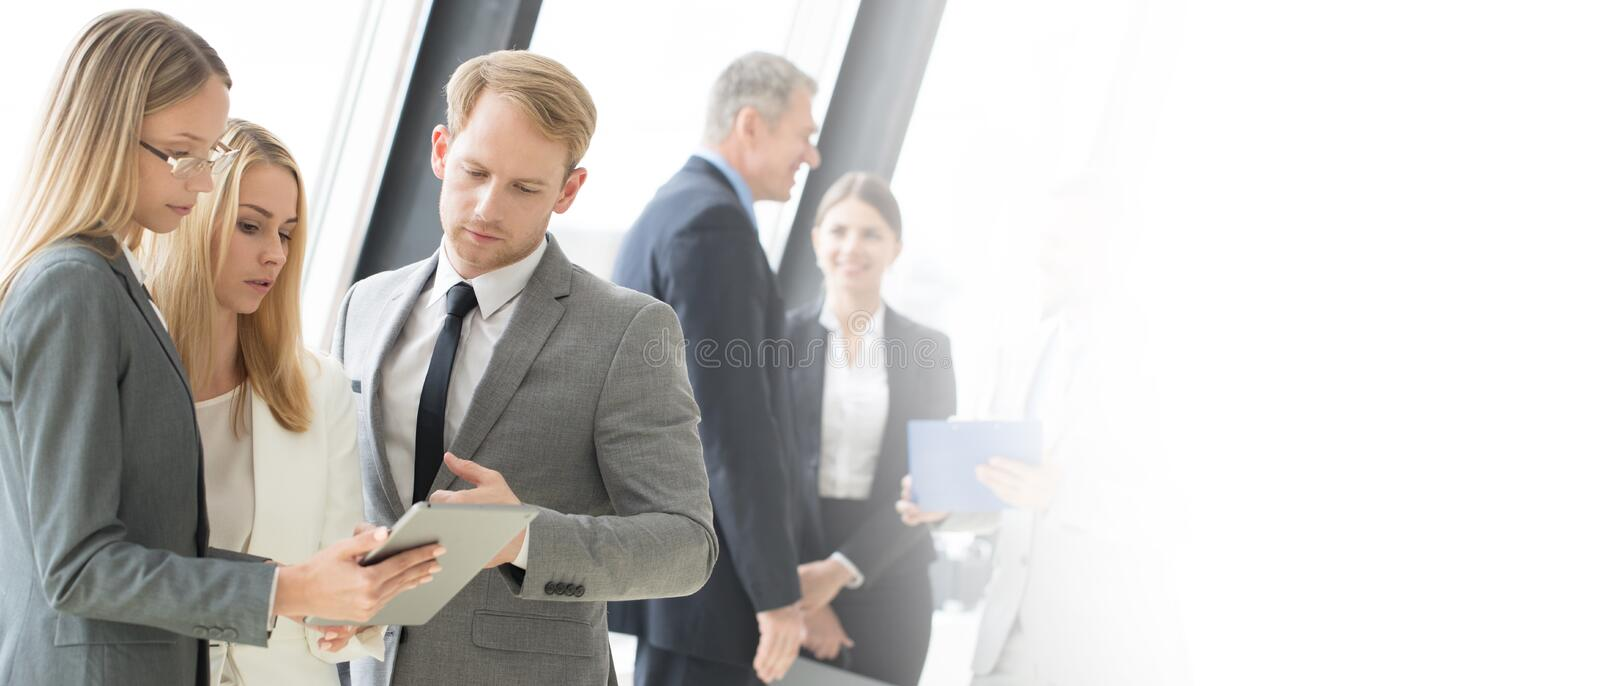 Business people meeting stock image